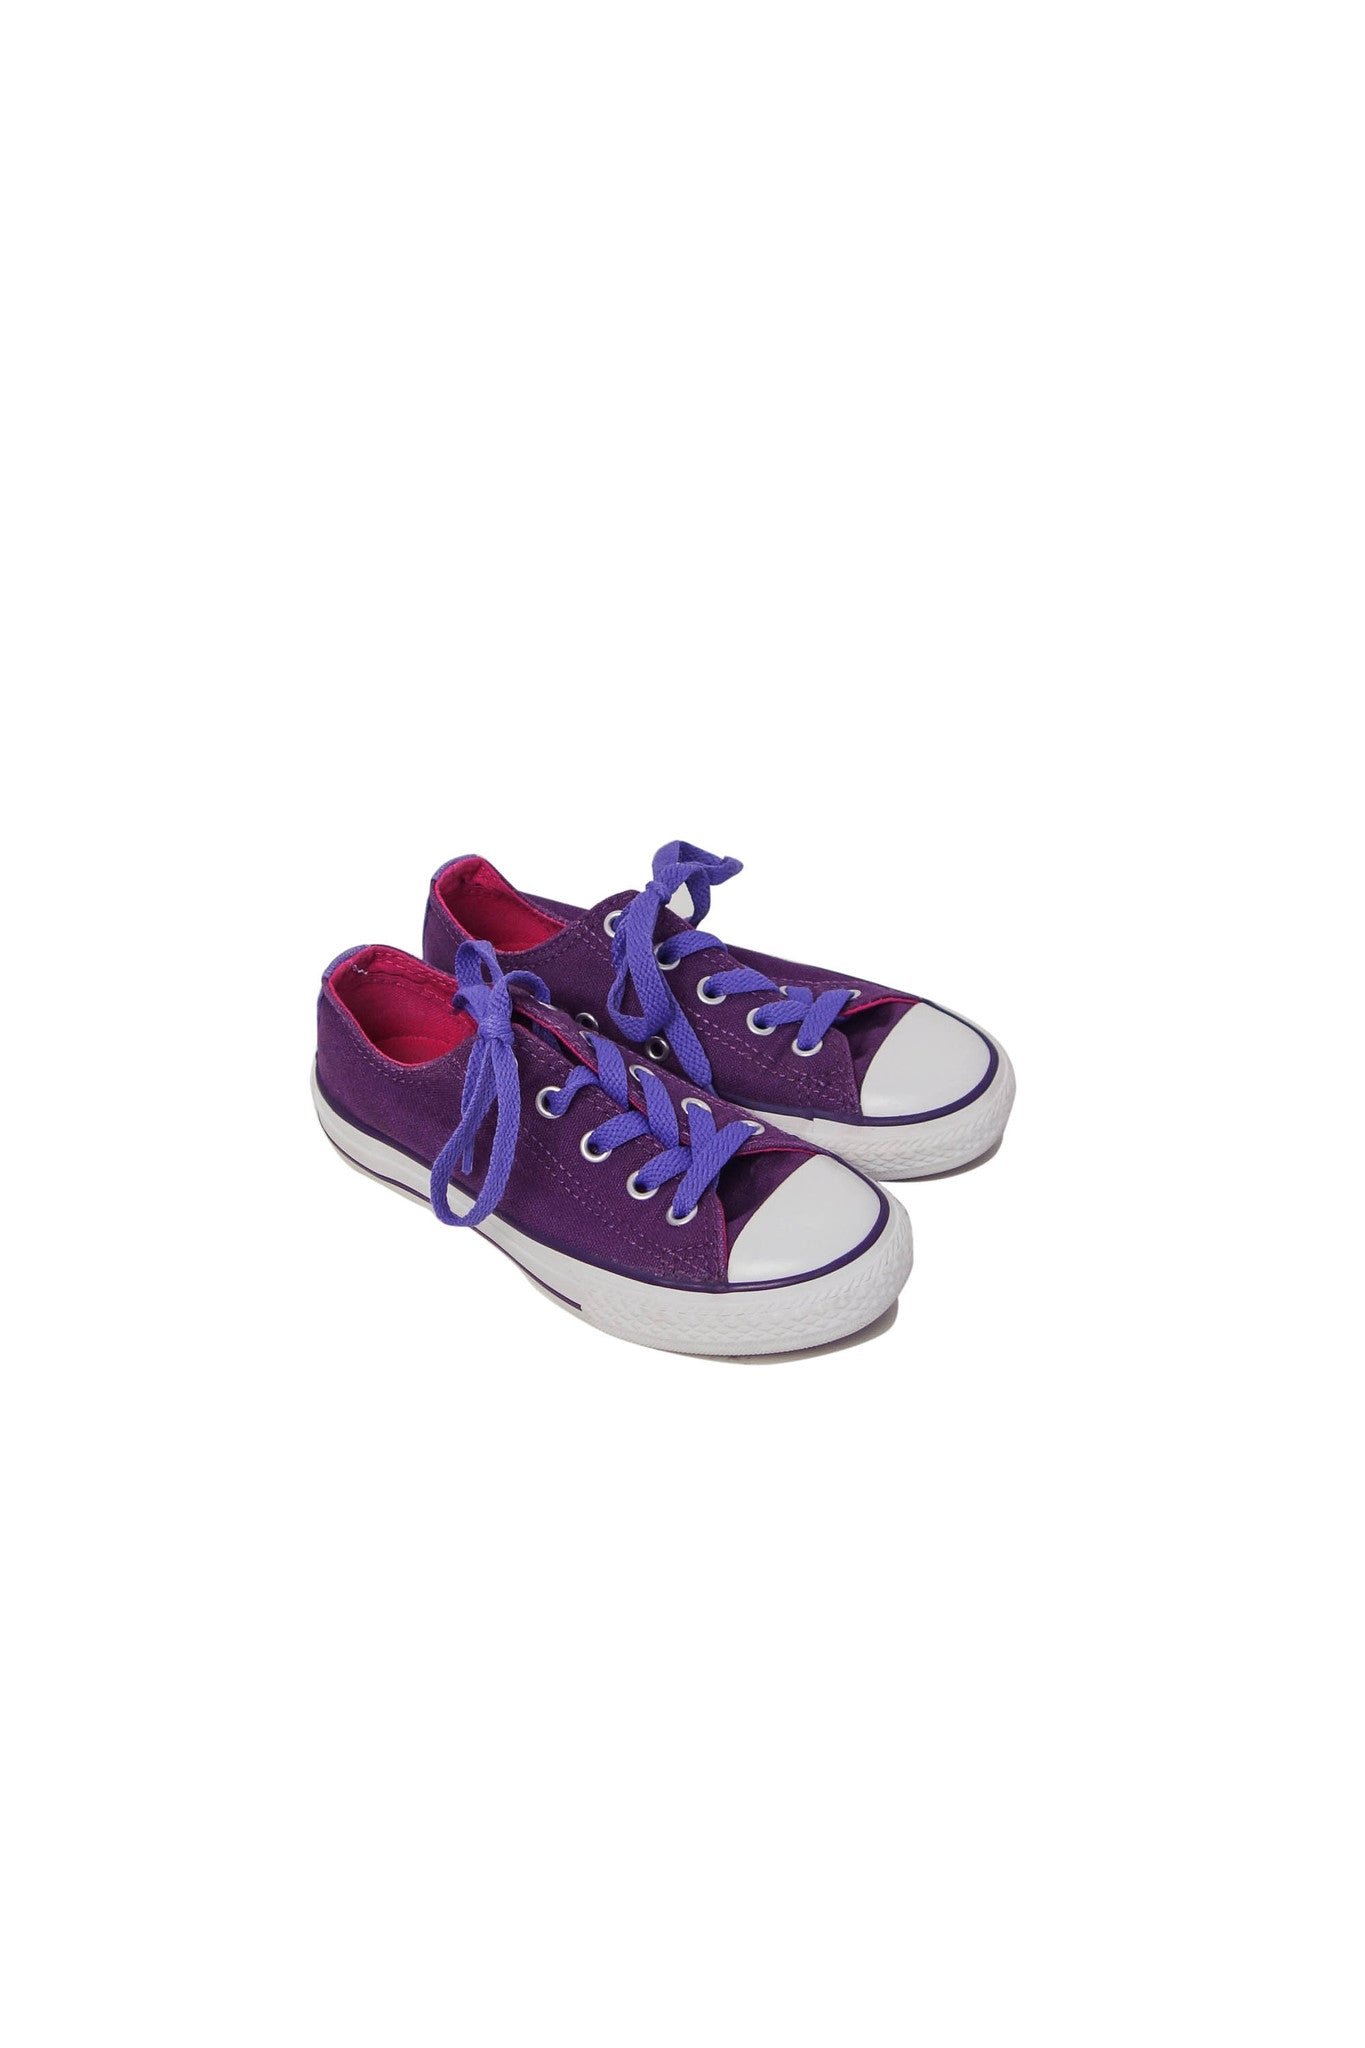 10003275 Converse Kids~Shoes 5T (US 11.5) at Retykle